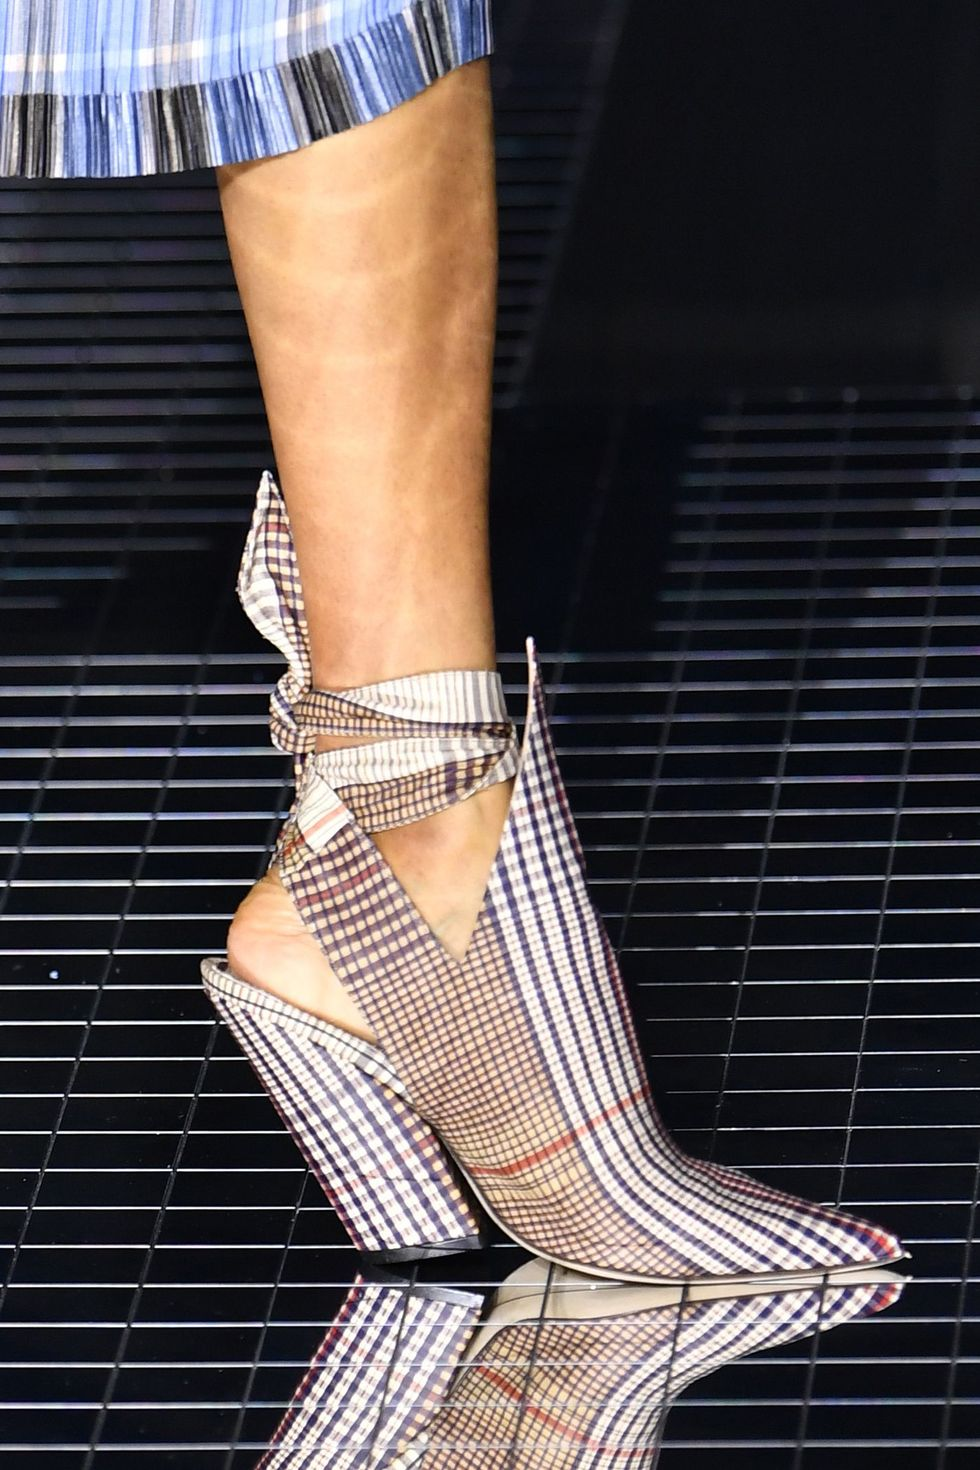 burberry-fall-2020-runway-plaid-heels-1581996456.jpg (980×1470)